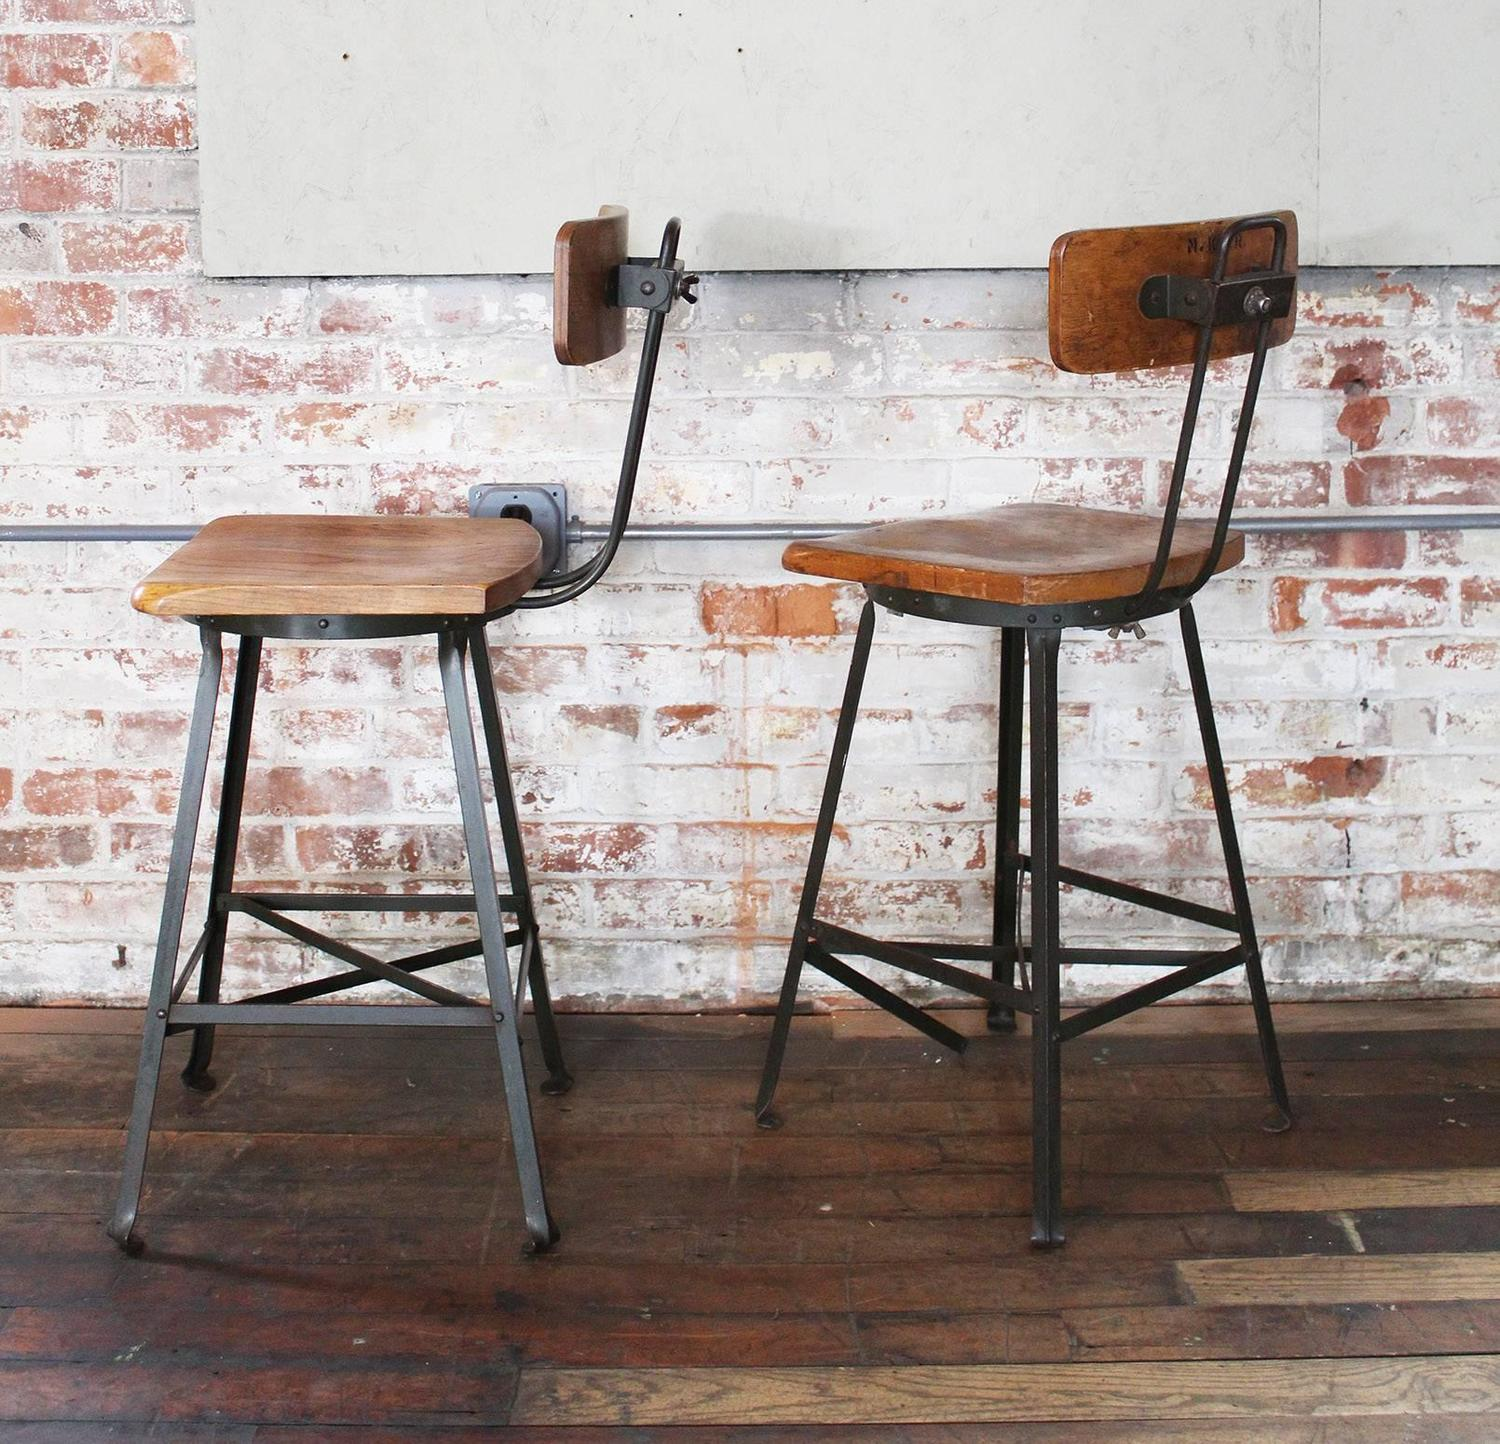 Pair of Vintage Industrial Wood and Metal Bar Stools For  : pairvintageindustrialwoodmetalstoolsadjustablegetbackincset26z from www.1stdibs.com size 1500 x 1444 jpeg 302kB